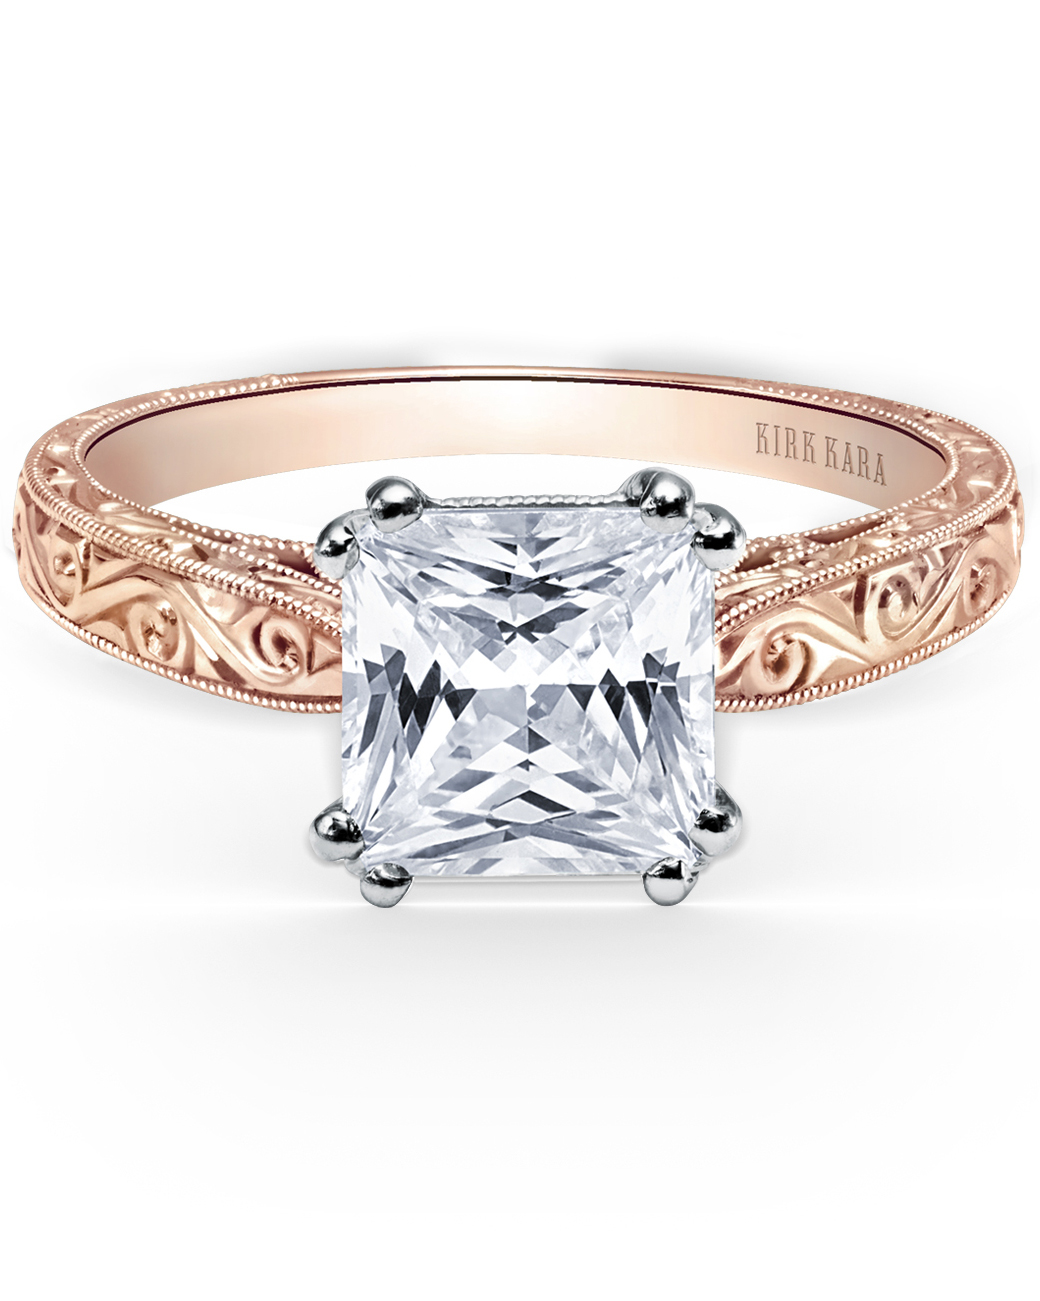 kirk-kara-rose-gold-stella-princess-cut-engagement-ring-0816.jpg